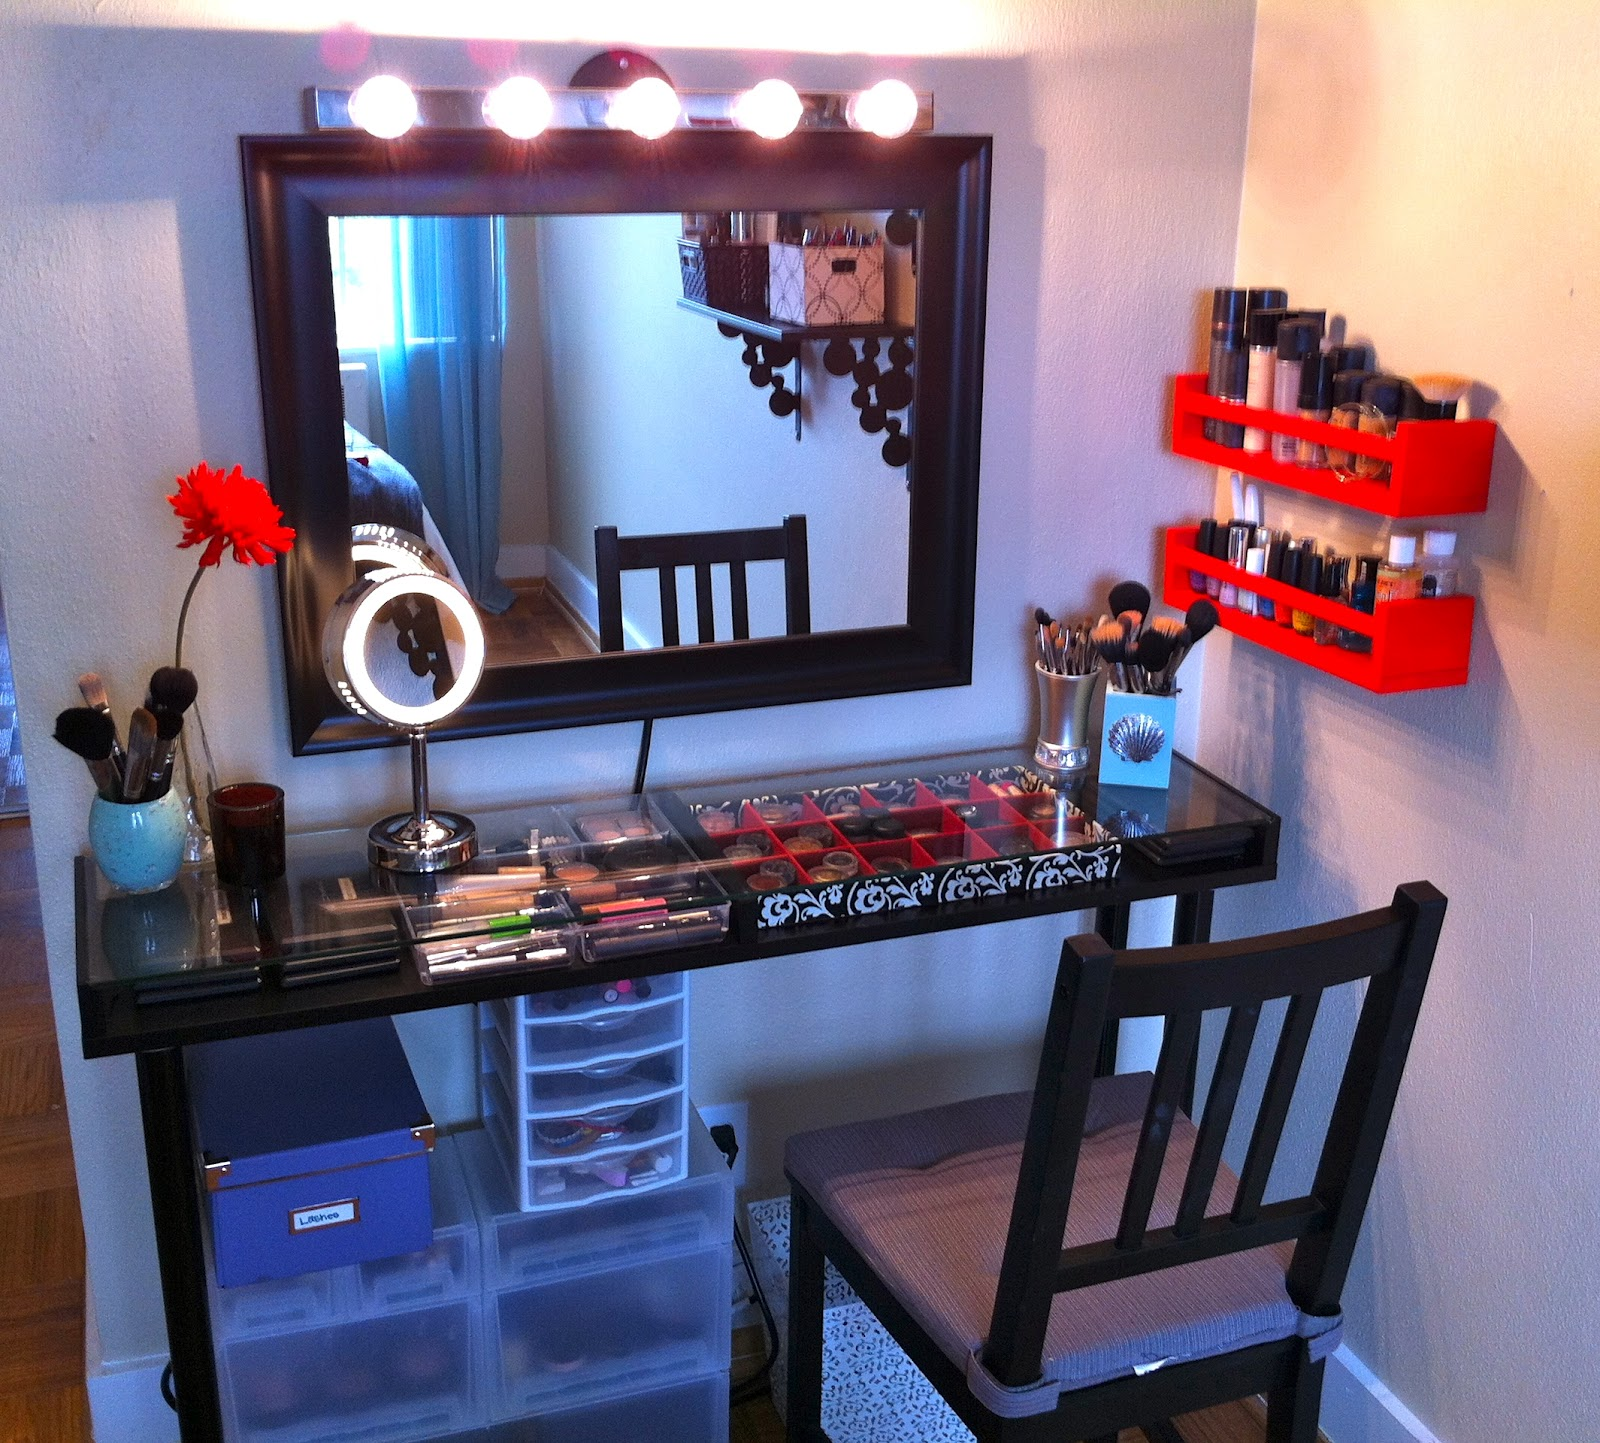 DIY Vanity Tables http://ohlv.blogspot.com/2012/05/my-diy-makeup-vanity.html